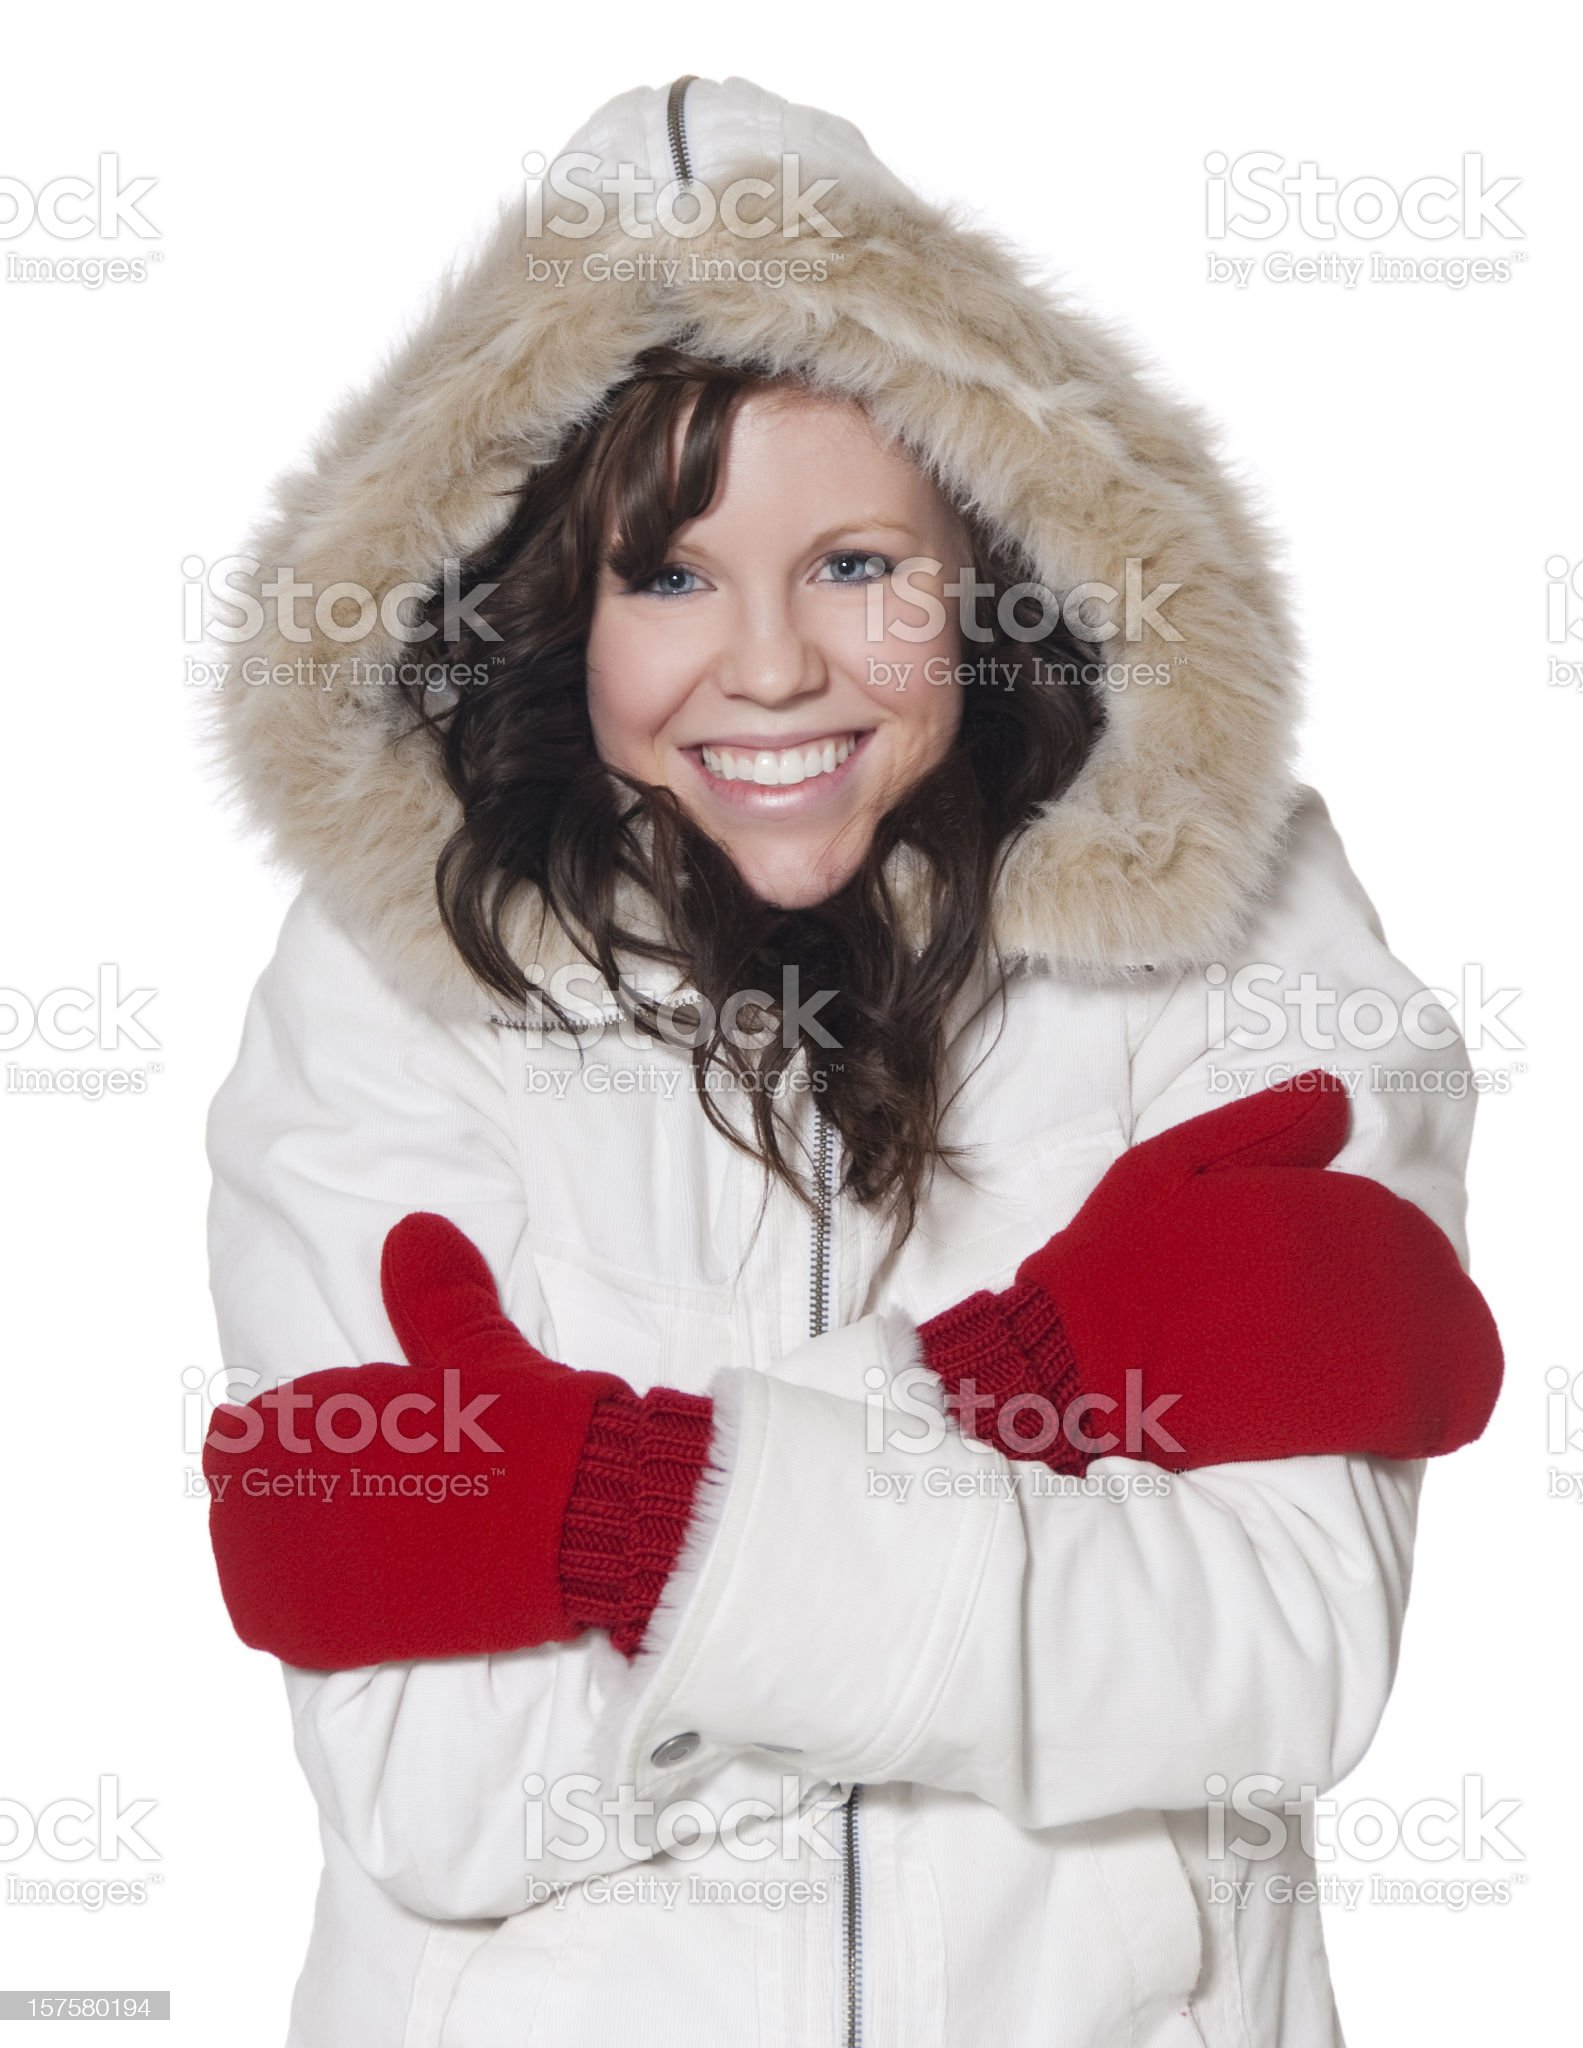 Young Woman Dressed for Winter royalty-free stock photo